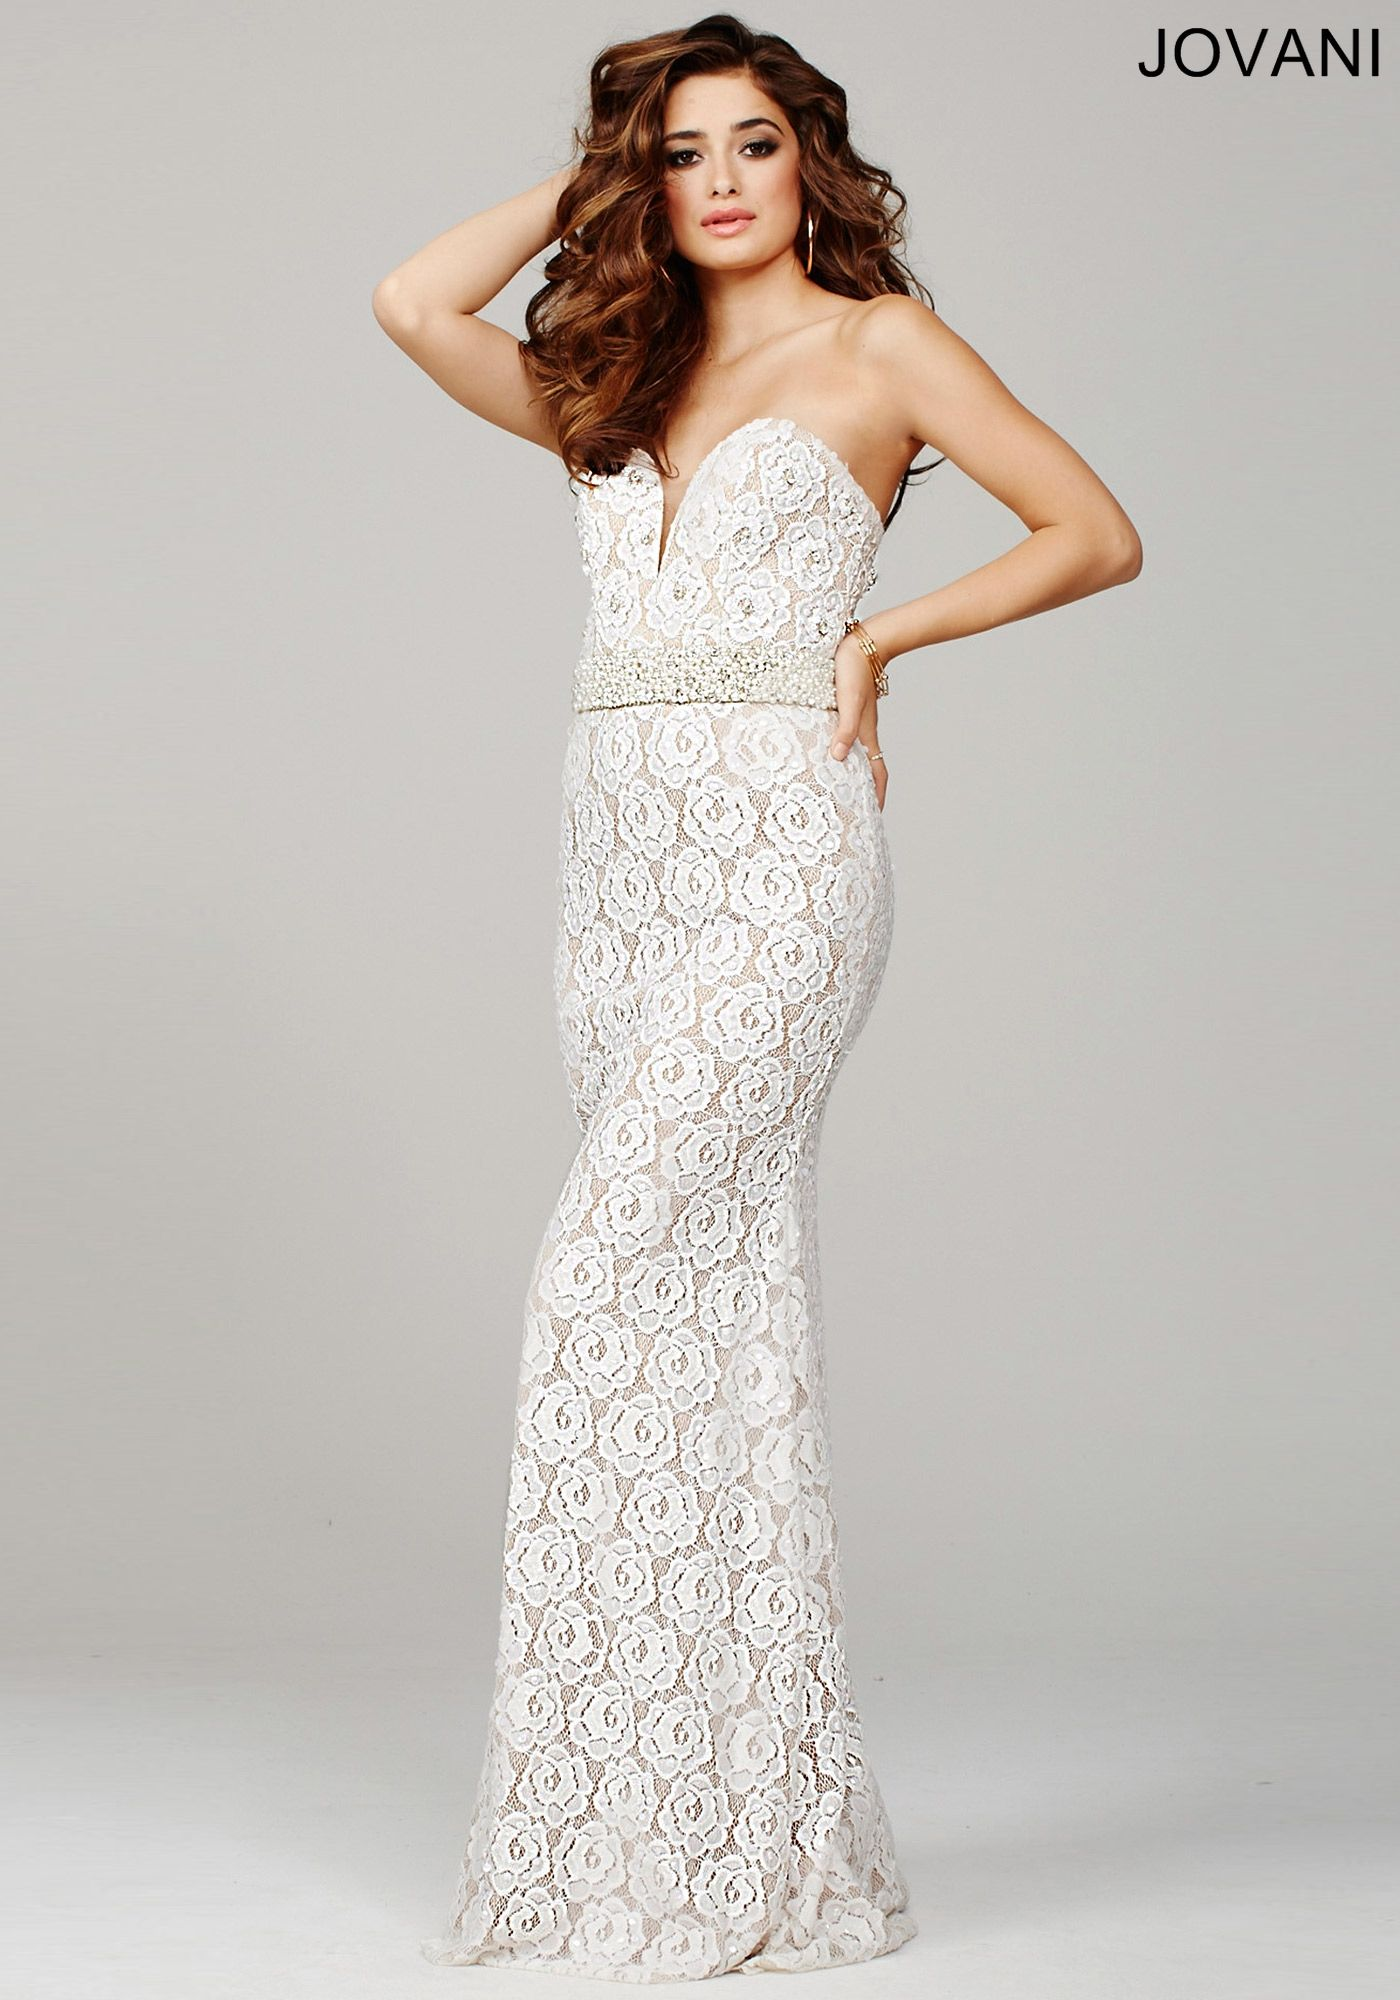 Sexy long lace dress with deep sweetheart neckline and jeweled belt